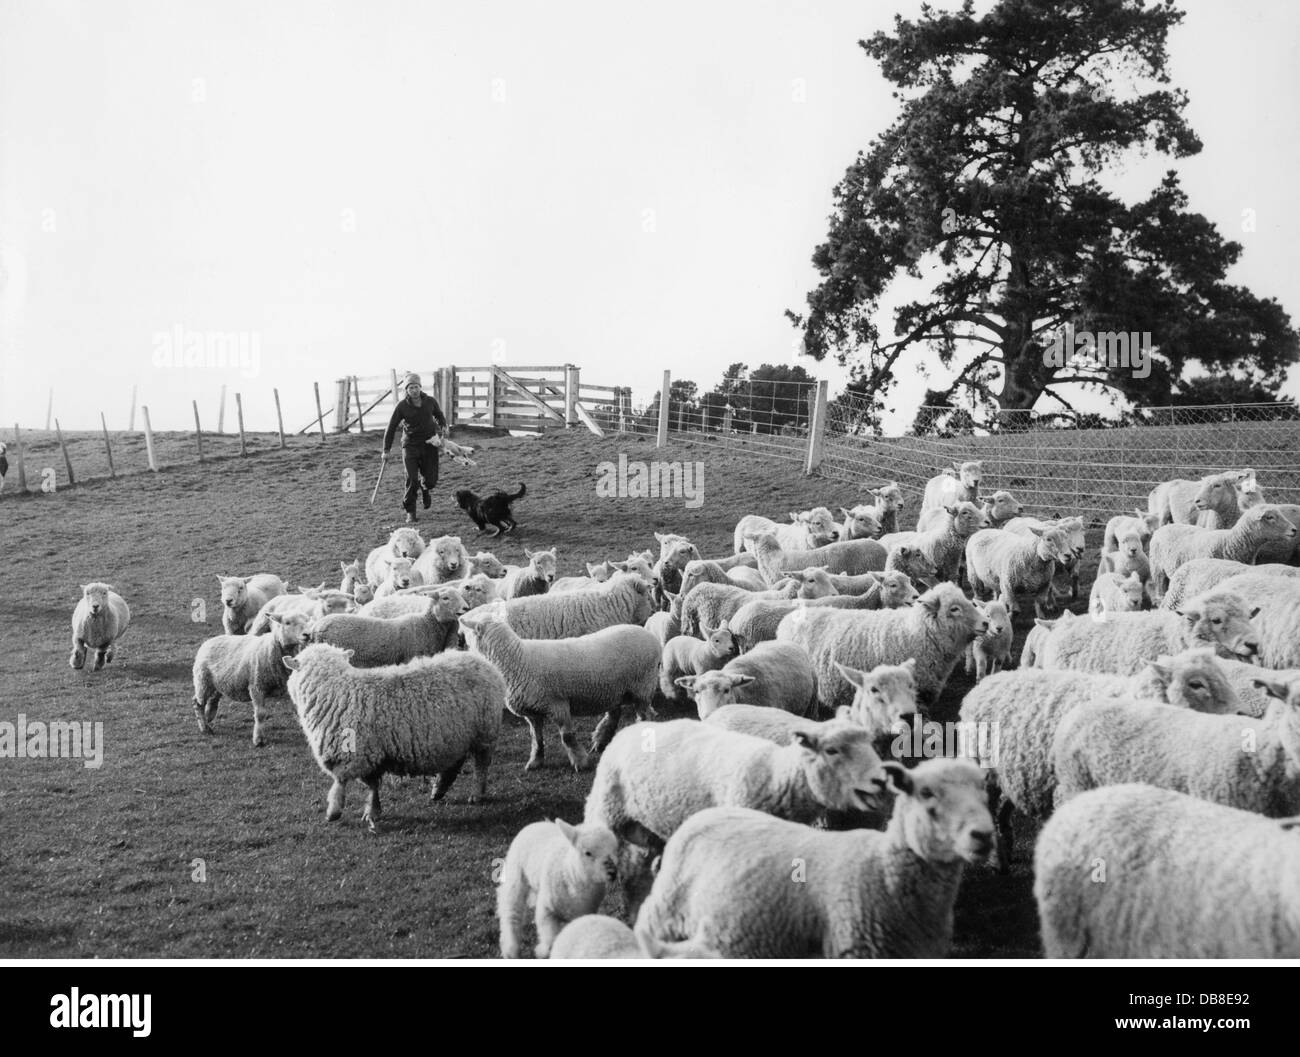 geography / travel, New Zealand, agriculture, flock of sheep, Napier, Hawke's Bay, 20th century, 20th century, - Stock Image